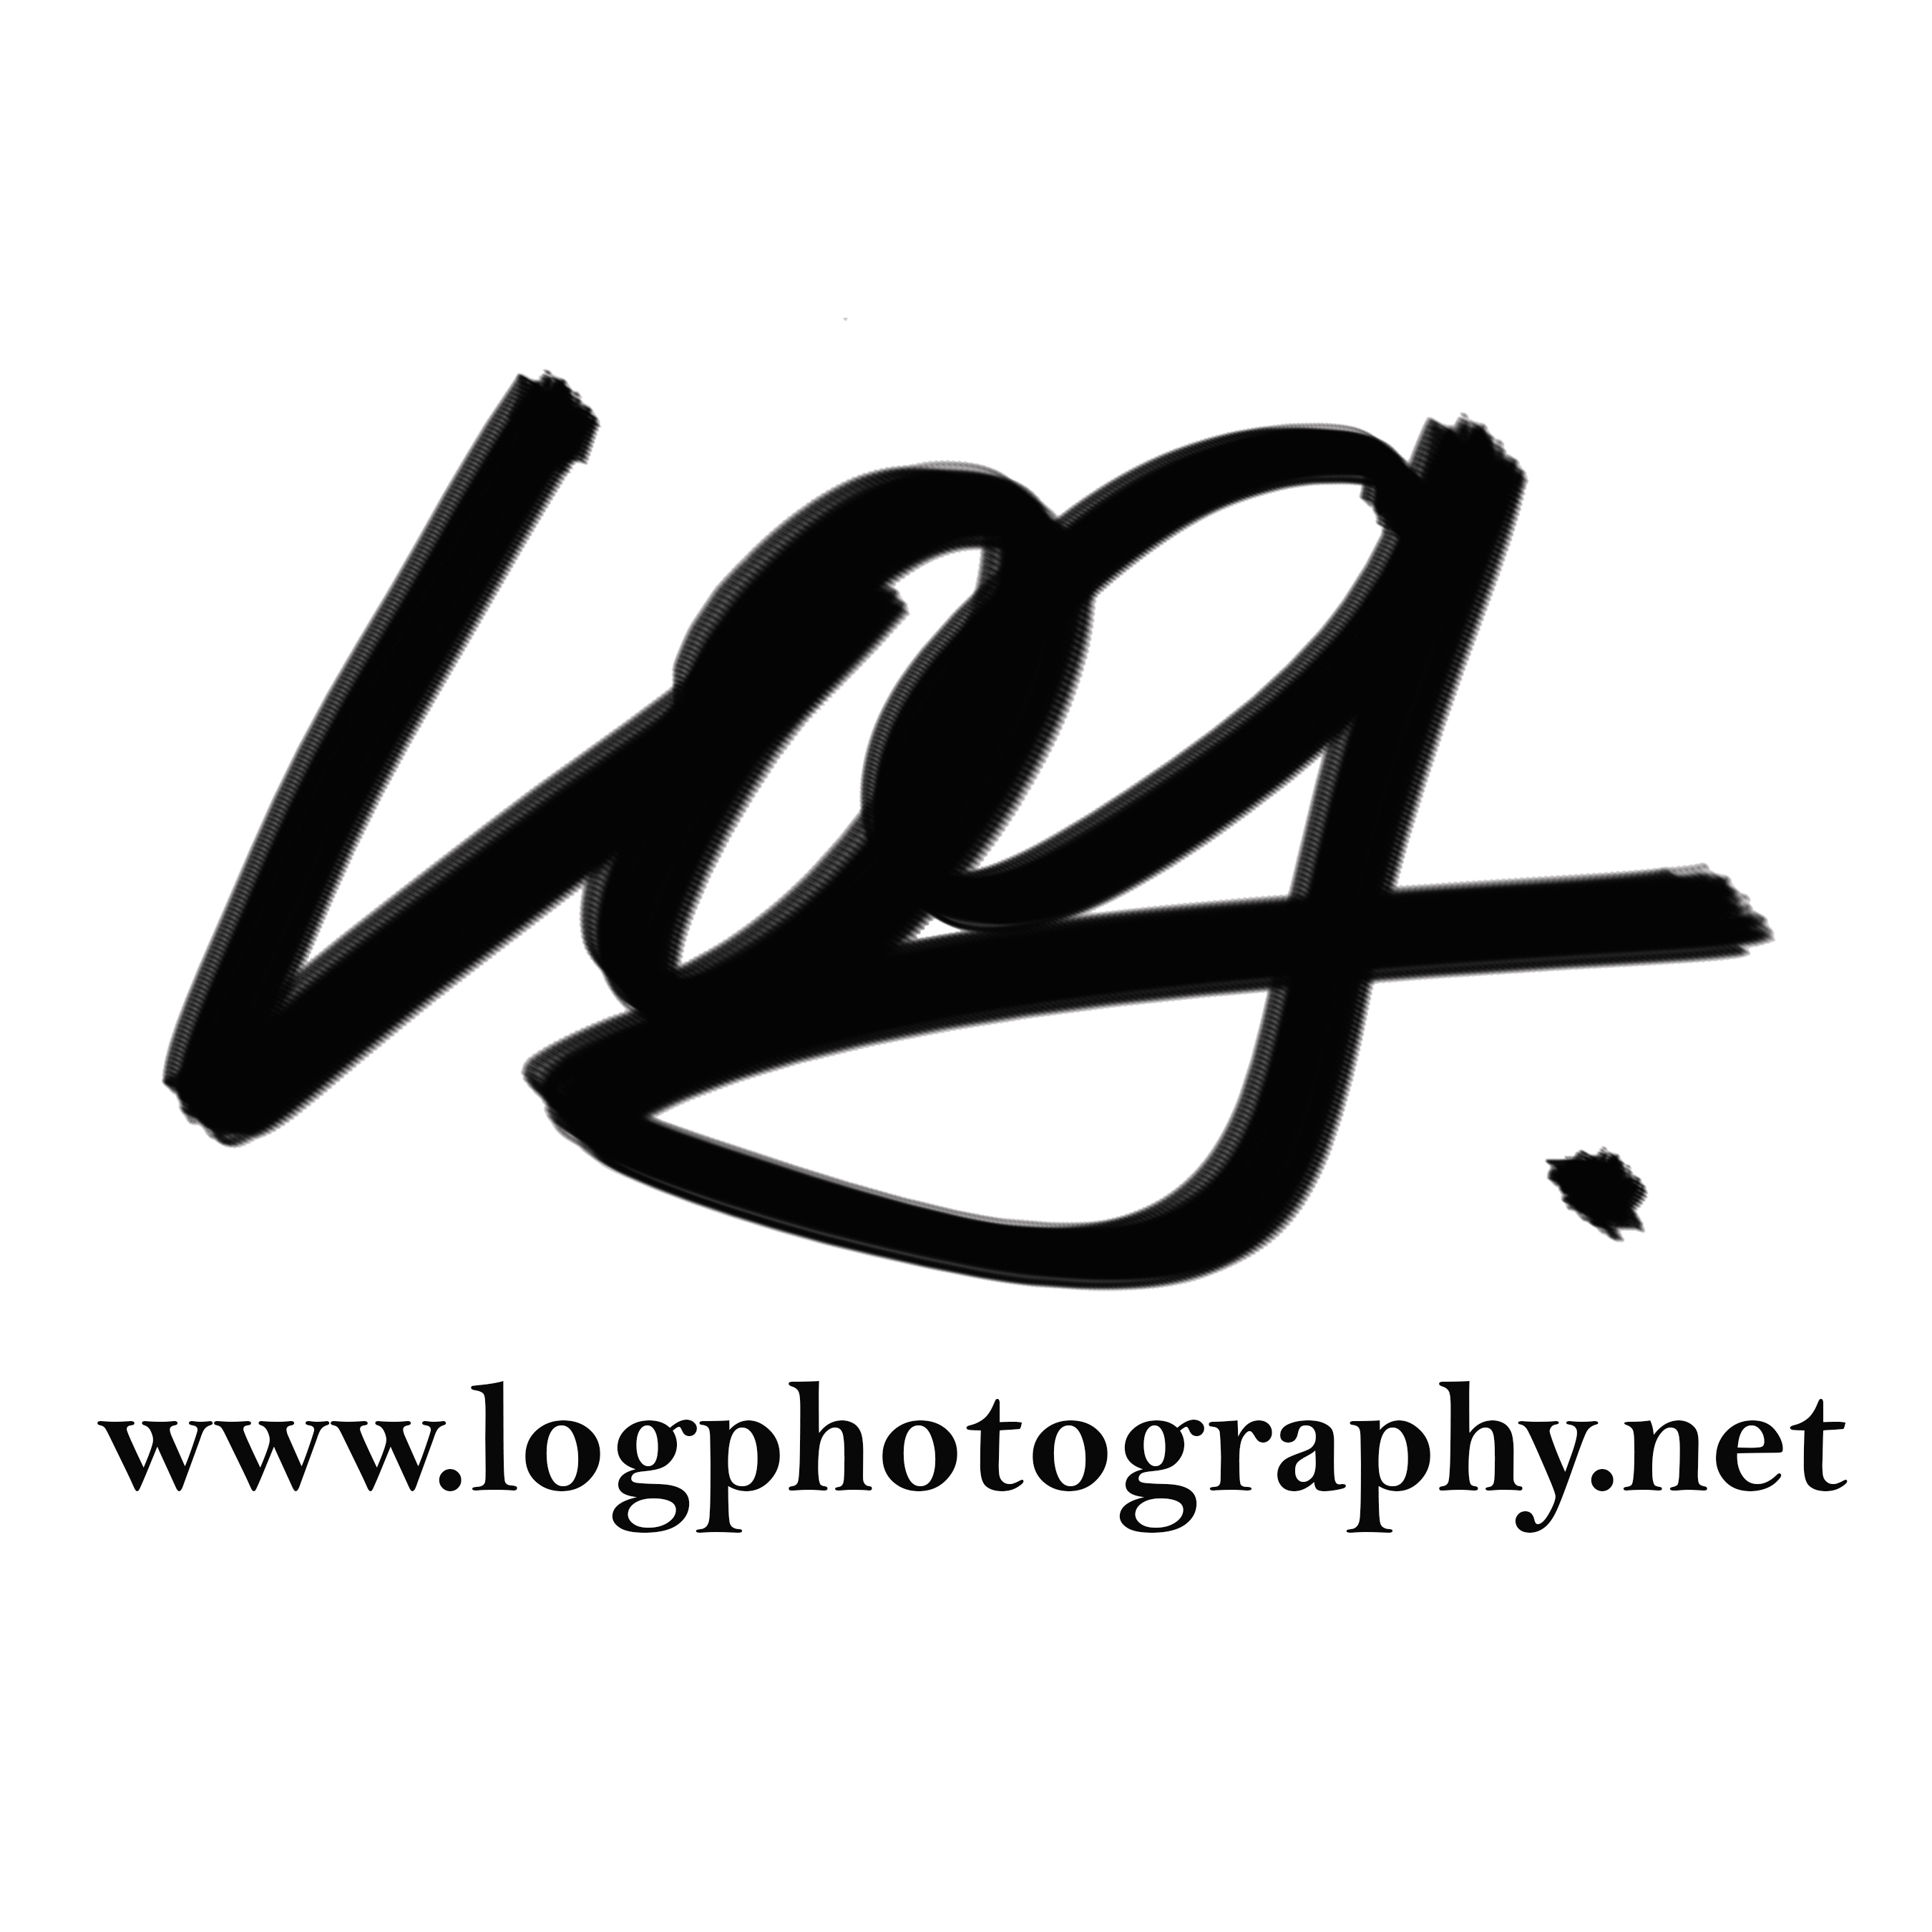 LOG PHOTOGRAPHY LLC